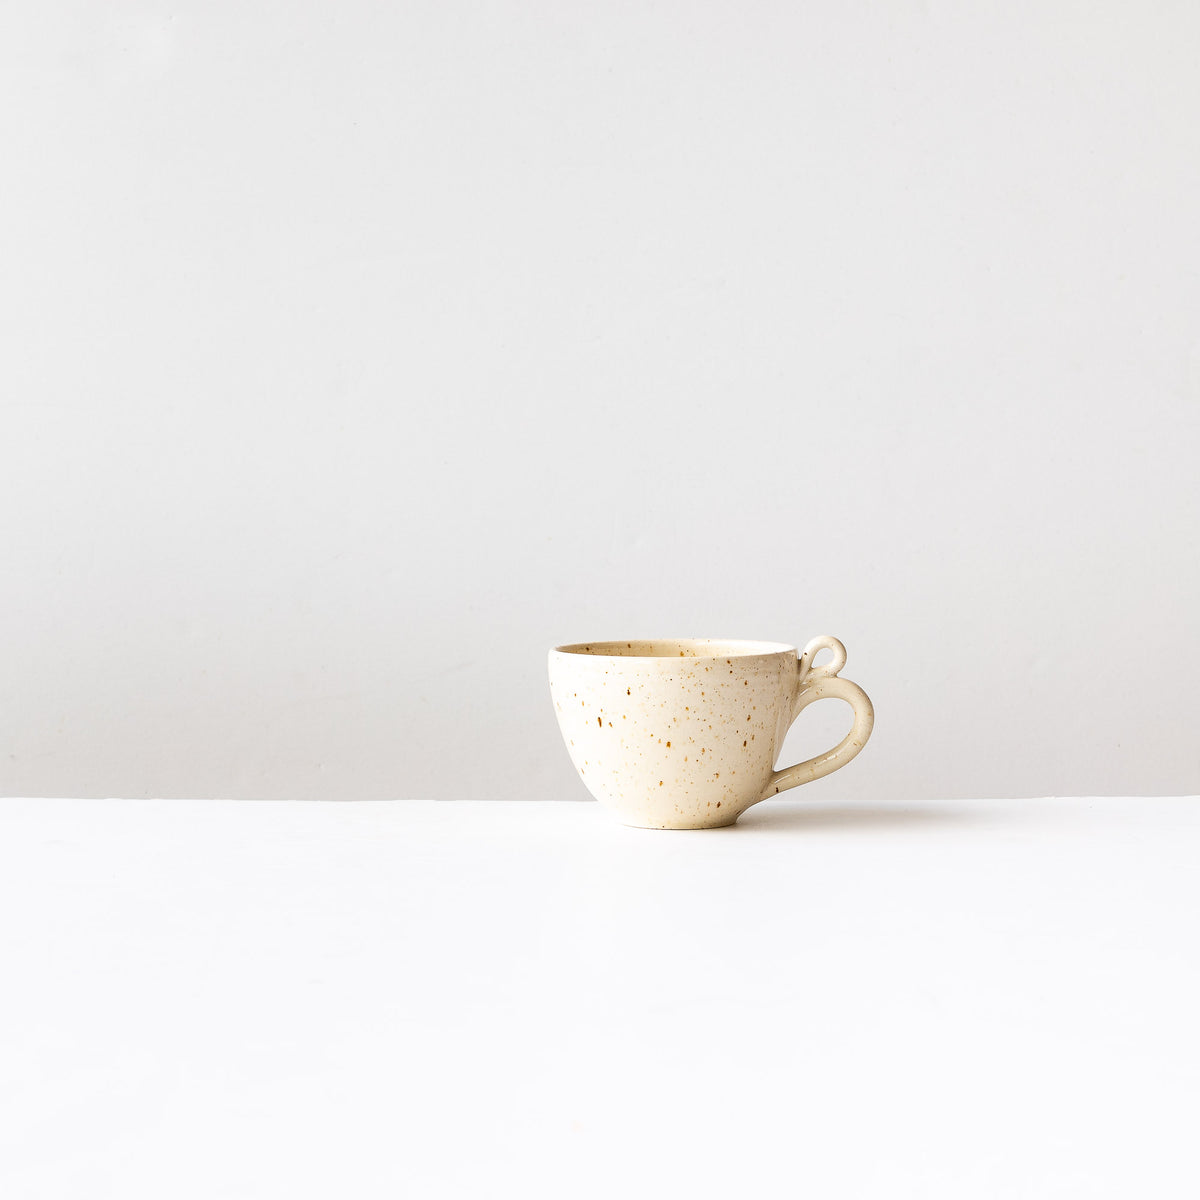 Swan - Handmade Stoneware Cappuccino Cup - Sold by Chic & Basta